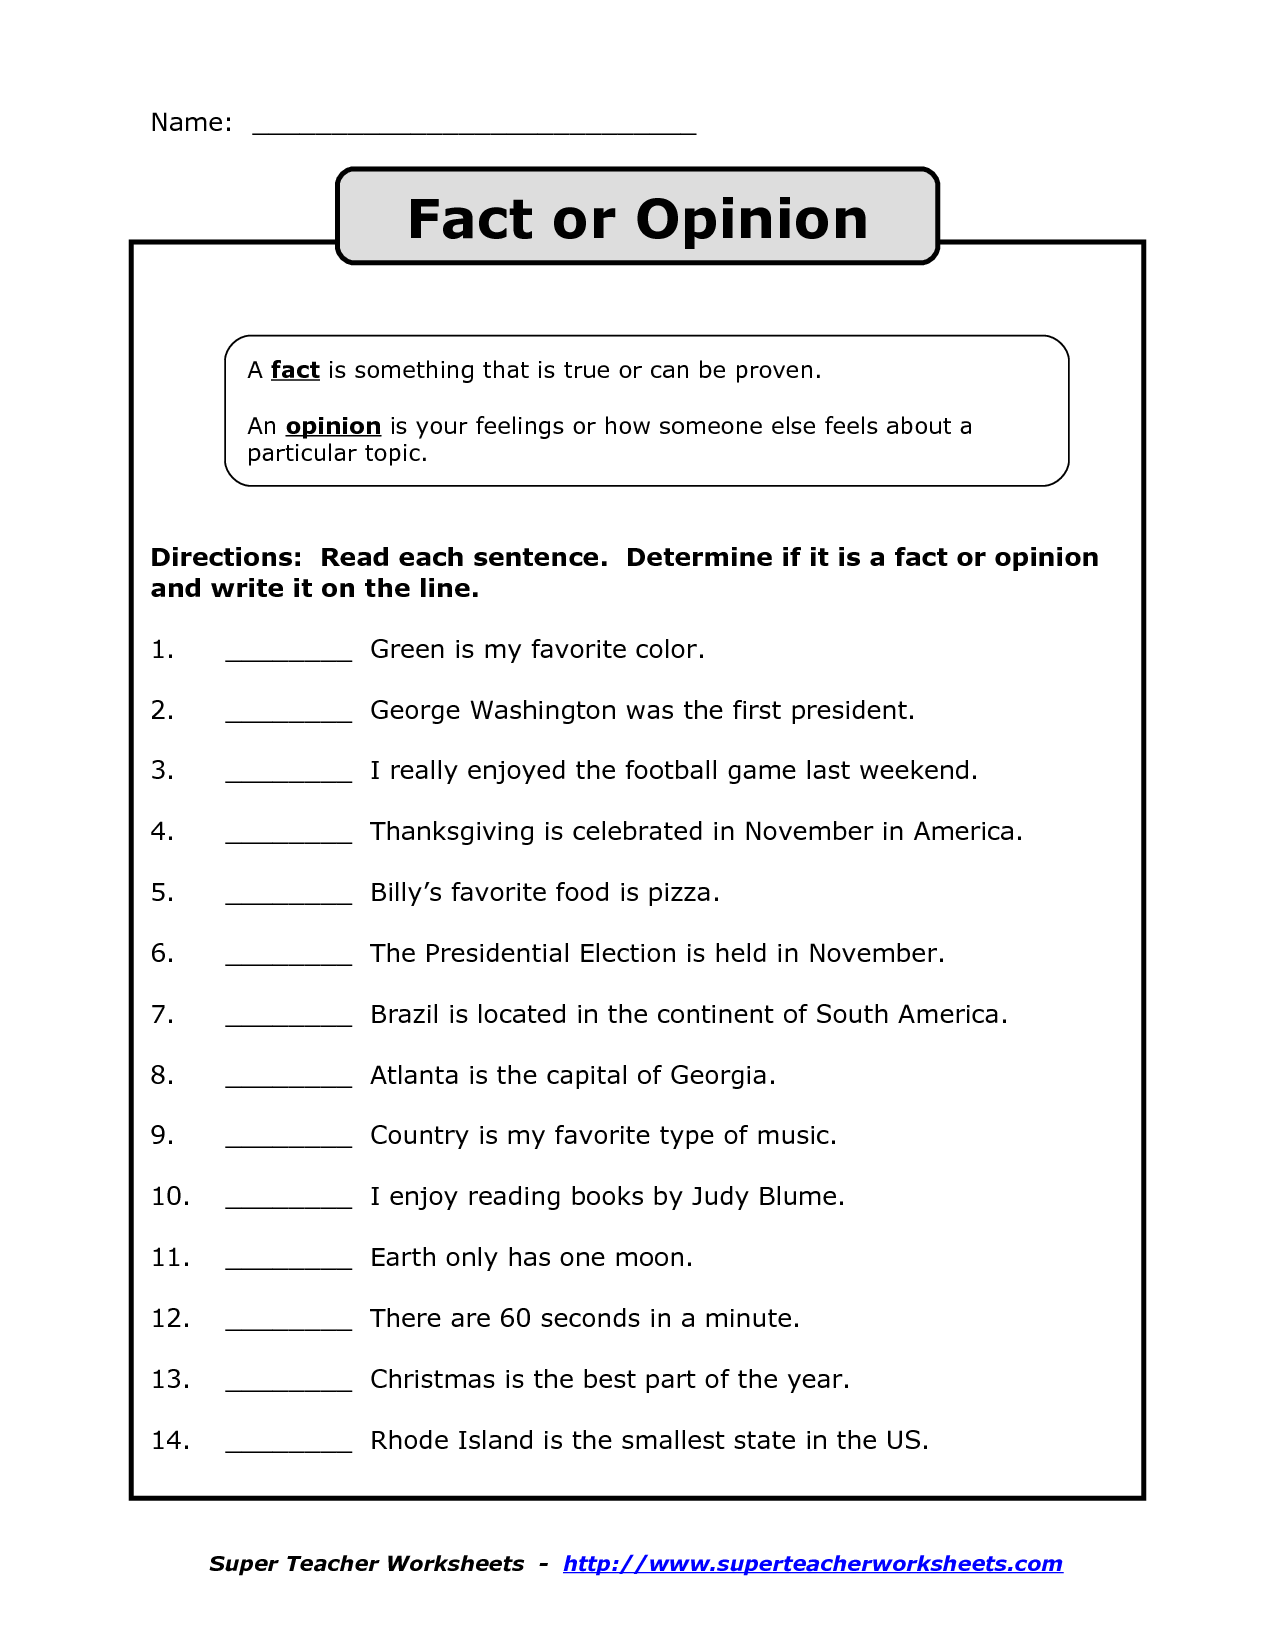 Worksheets Fact And Opinion Worksheets fact vs opinion worksheet google search social studies search